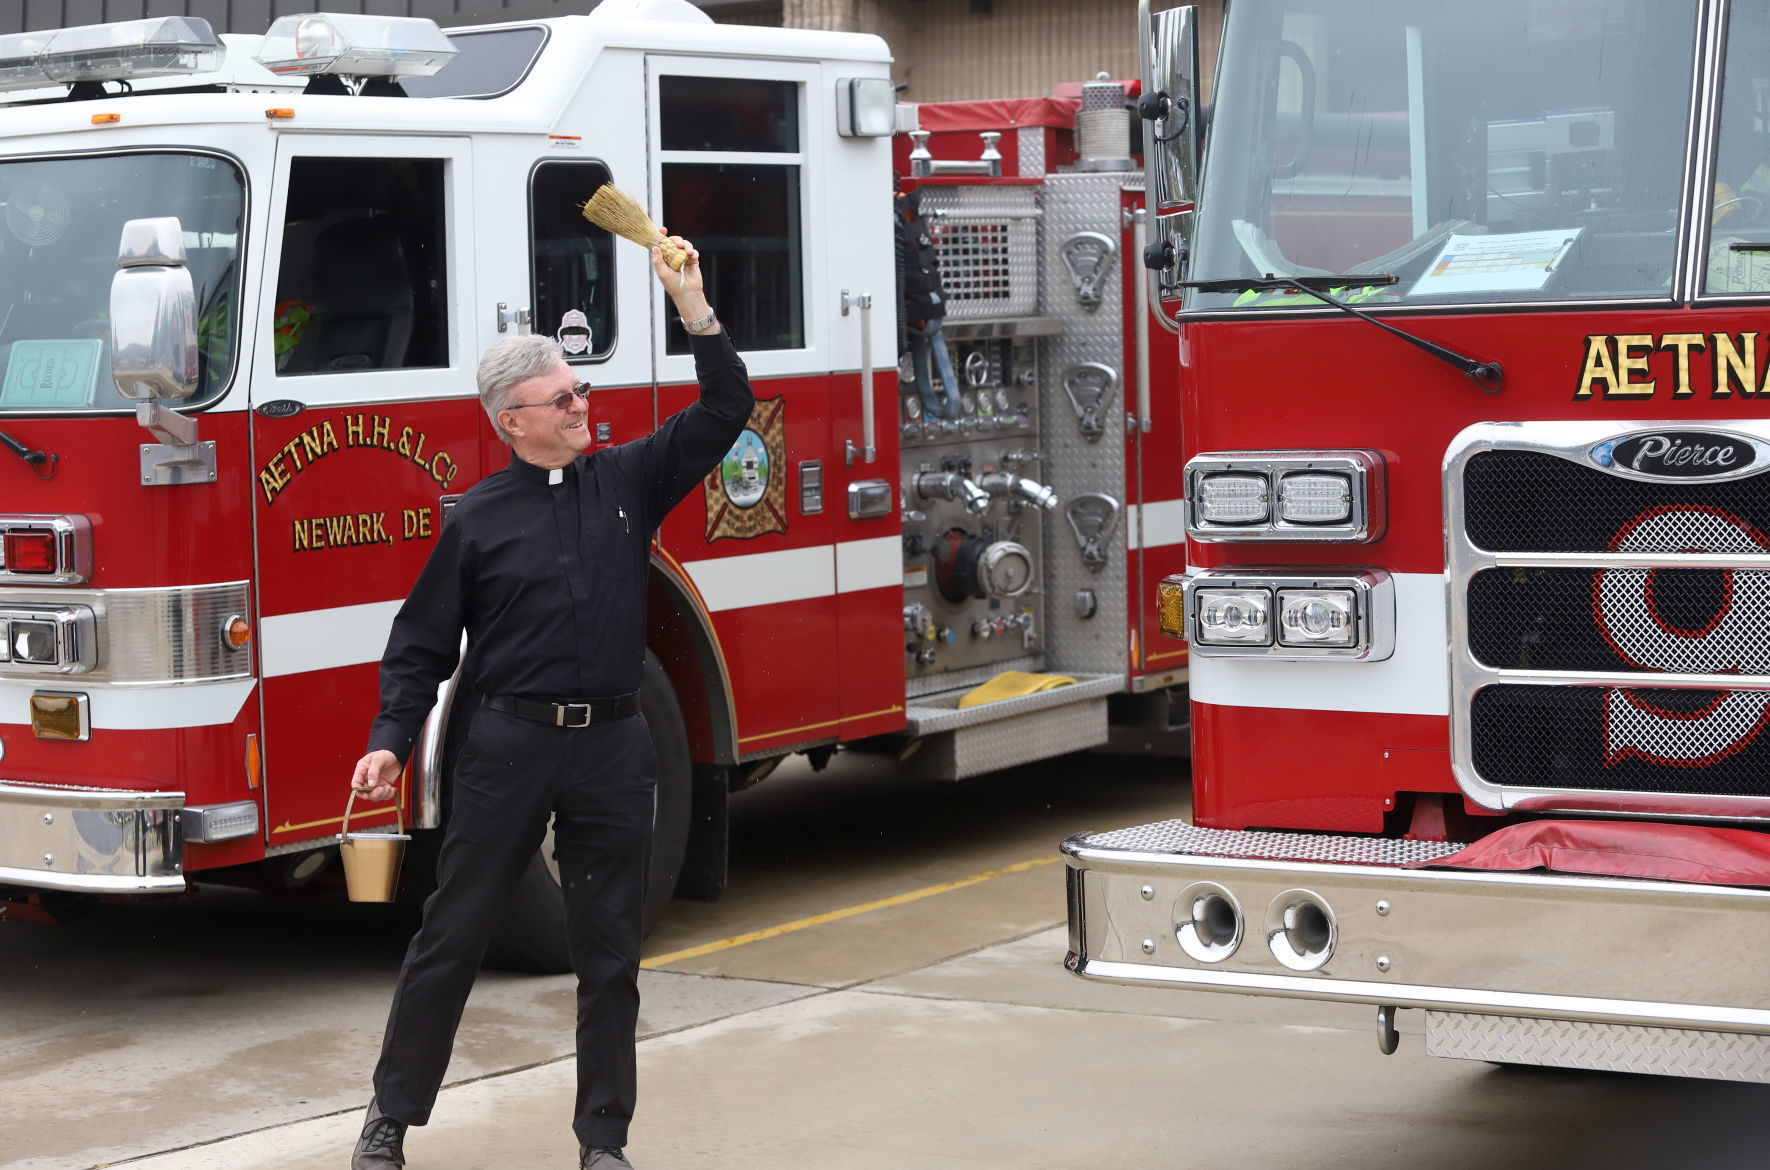 Aetna fire engines blessed on Feast of Saint Florian